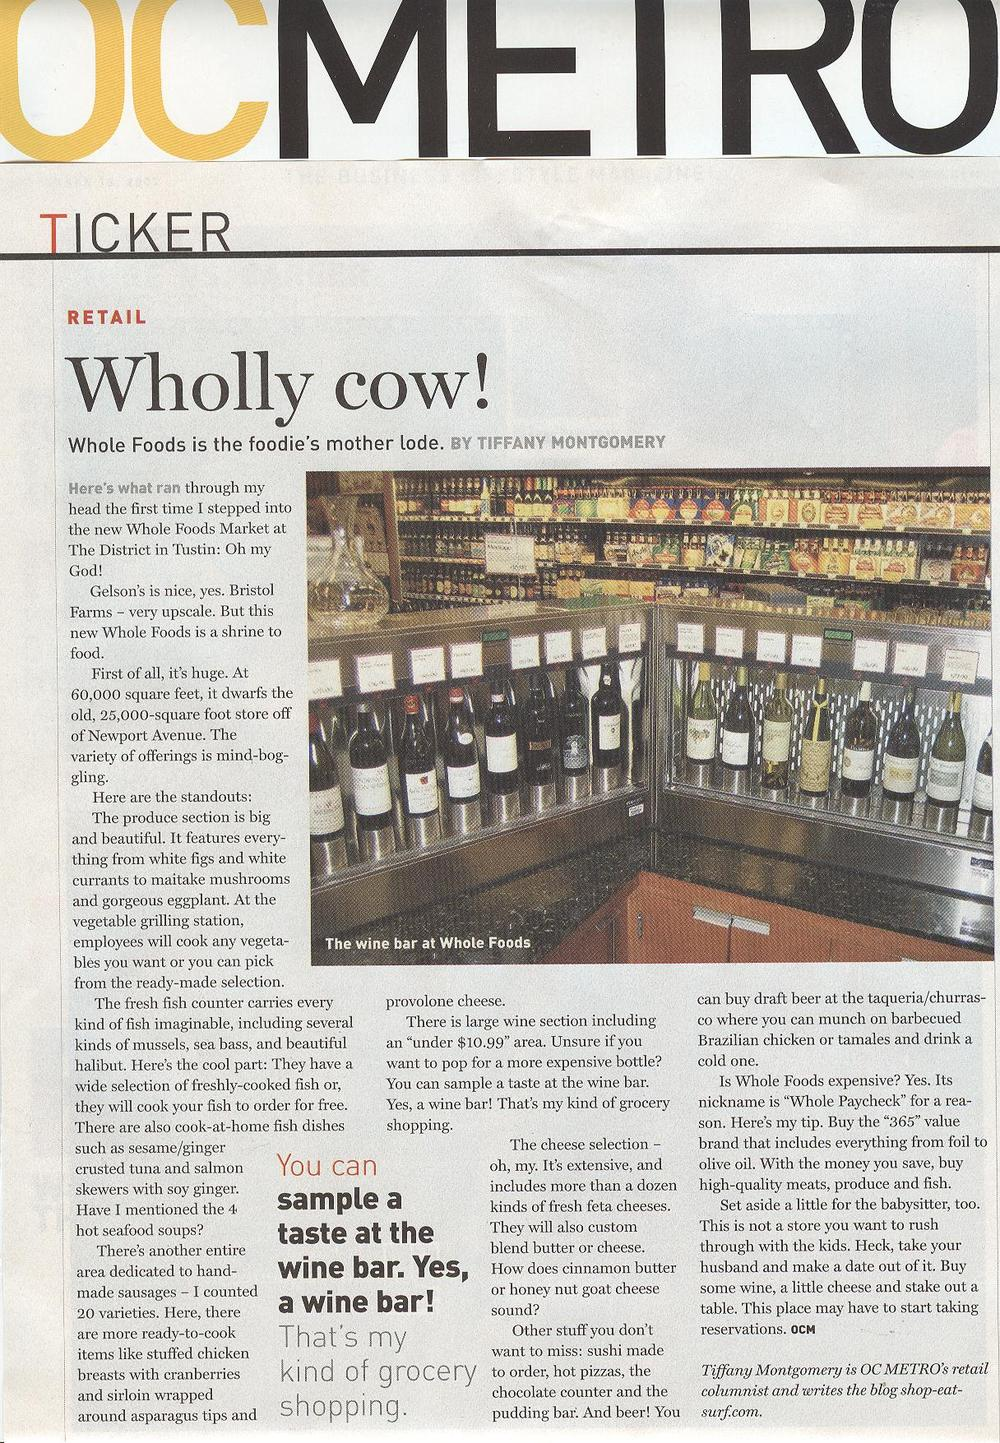 OC Metro - Sept 13, 2007 - Whole Foods Article 1.jpg